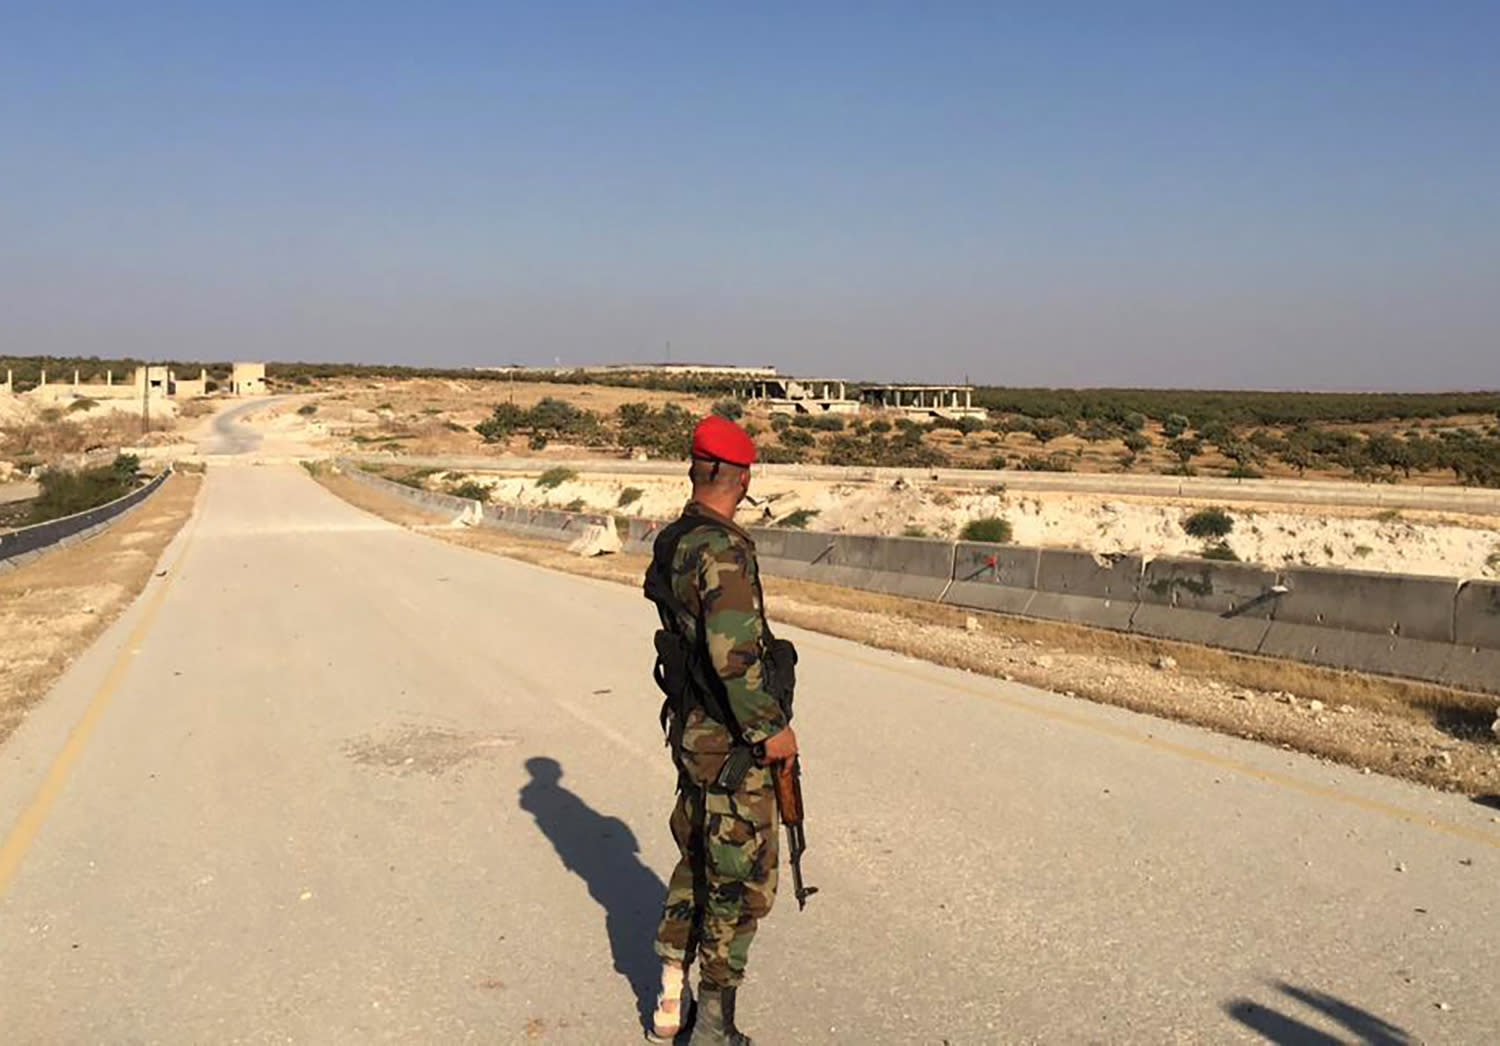 FILE - This Aug. 24, 2019, file photo, a Syrian soldier in the northwestern town of Khan Sheikoun, stands on the highway that links the capital Damascus with the northern city of Aleppo, Syria. The M5 highway, recaptured by President Bashar Assad's forces this week, is arguably the most coveted prize in Syria's civil war. The strategic highway is vital for Syria's economy as well as for moving troops. (AP Photo/Albert Aji, File)